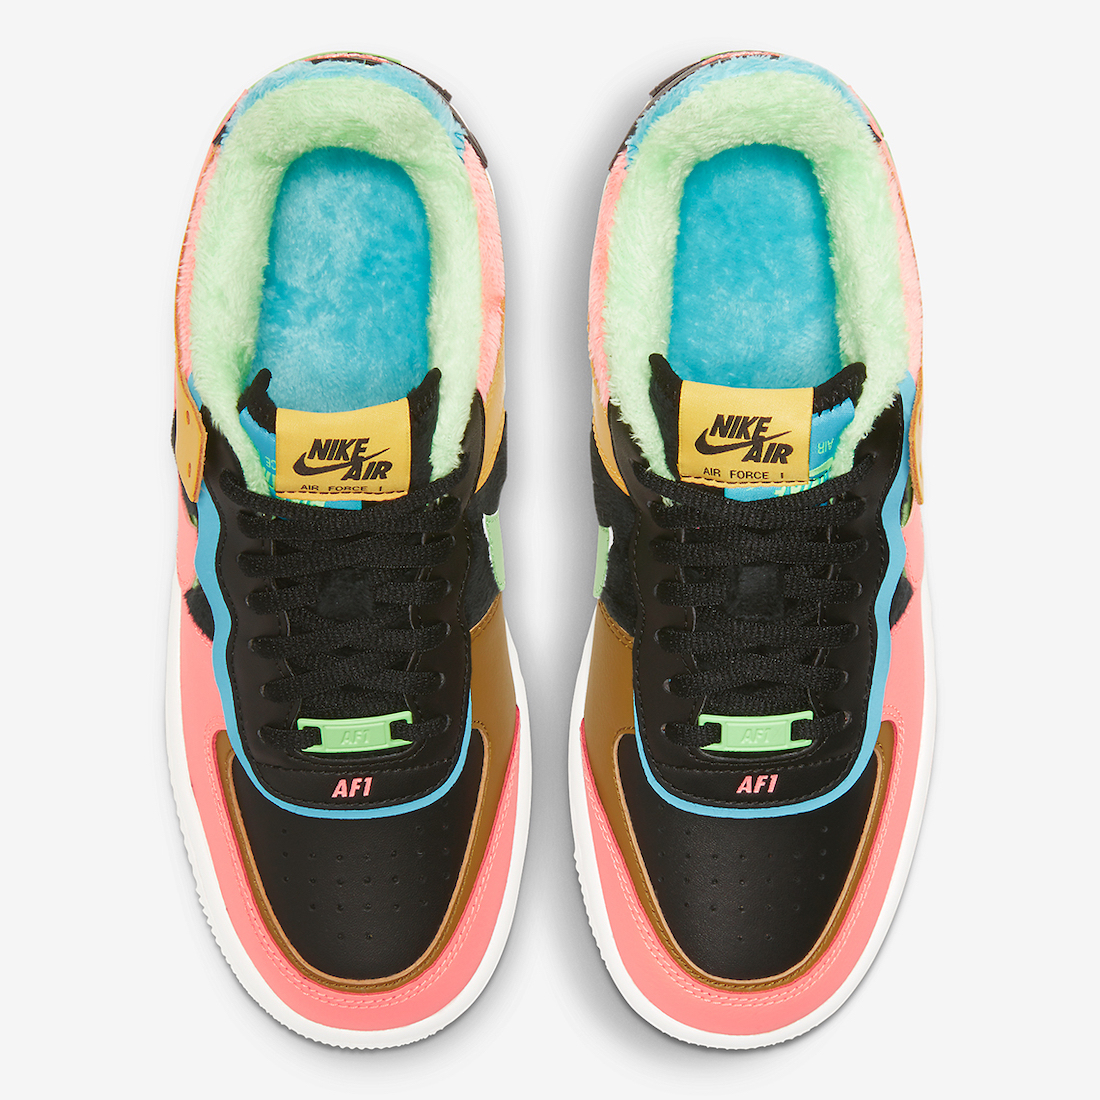 Nike Air Force 1 Shadow SE Solar Flare Atomic Pink CT1985-700 Release Date